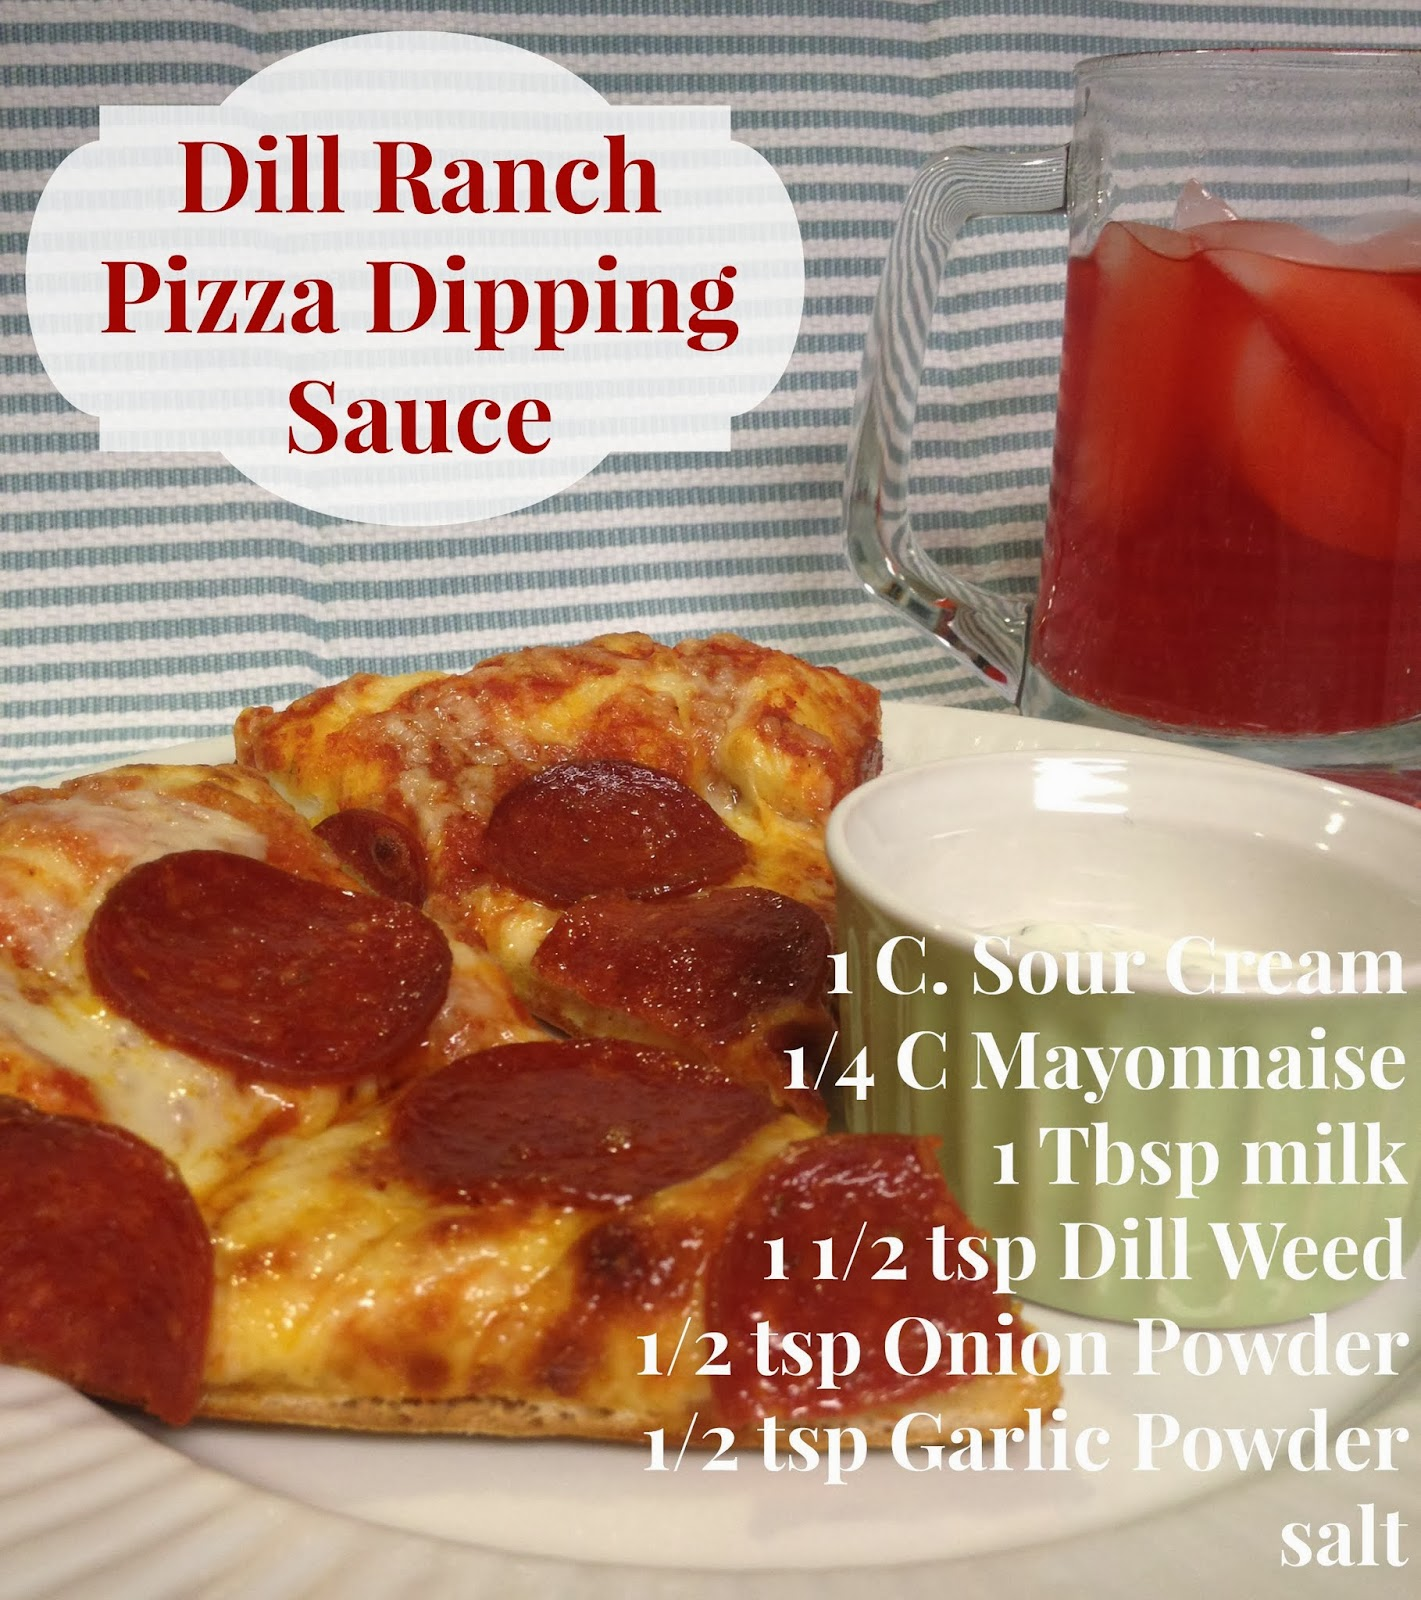 Dill Ranch Dipping Sauce #gametimegoodies #shop #cbias #digiorno #walmart